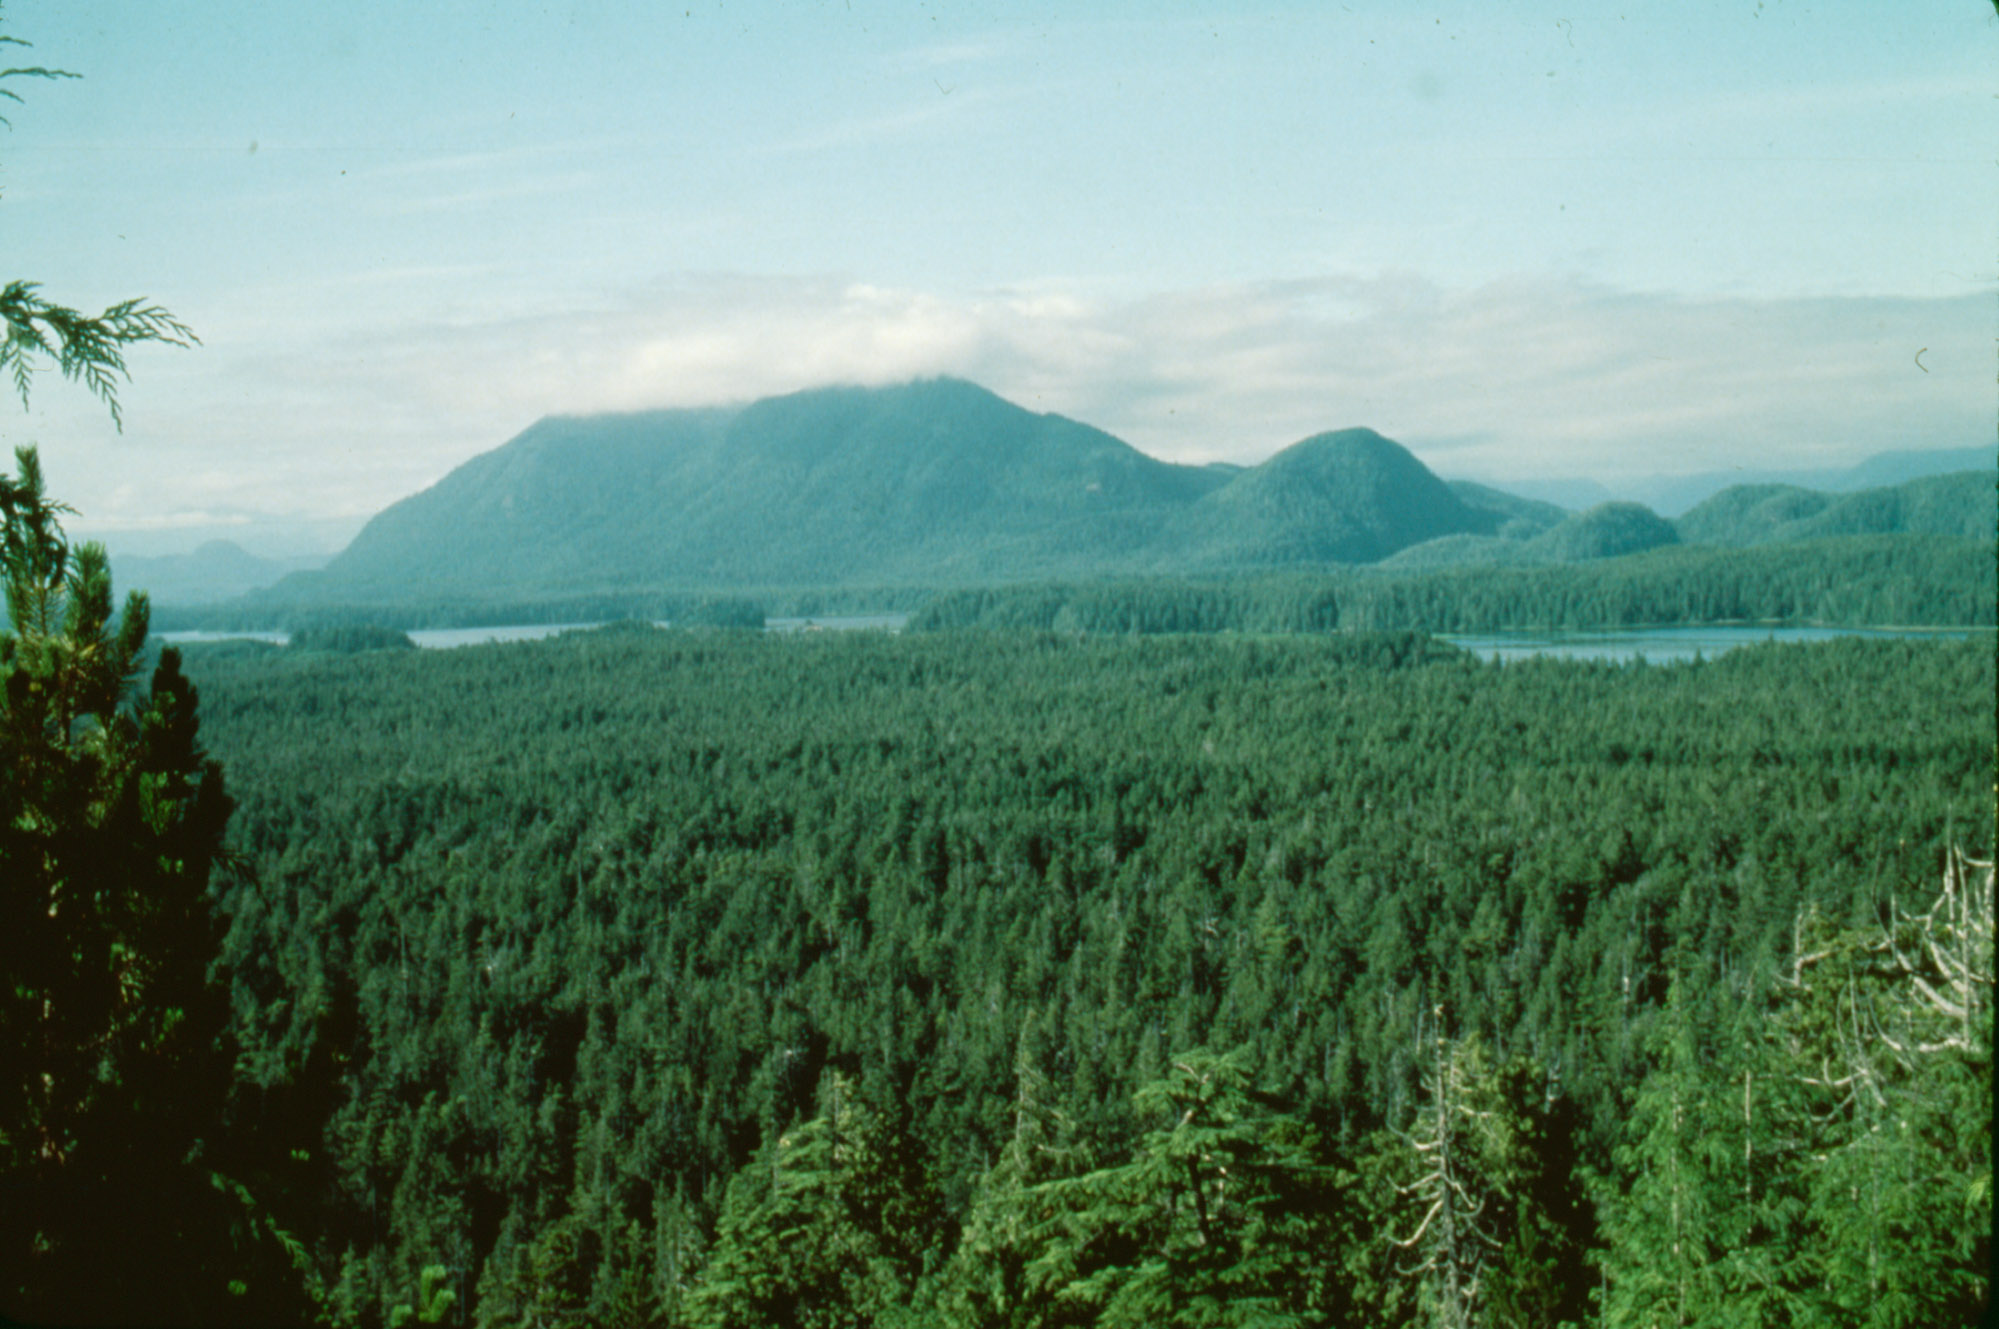 This image shows a view overlooking large evergreen forest with a forest covered mountain in the background. There is a narrow body of water through the image close to the mountain